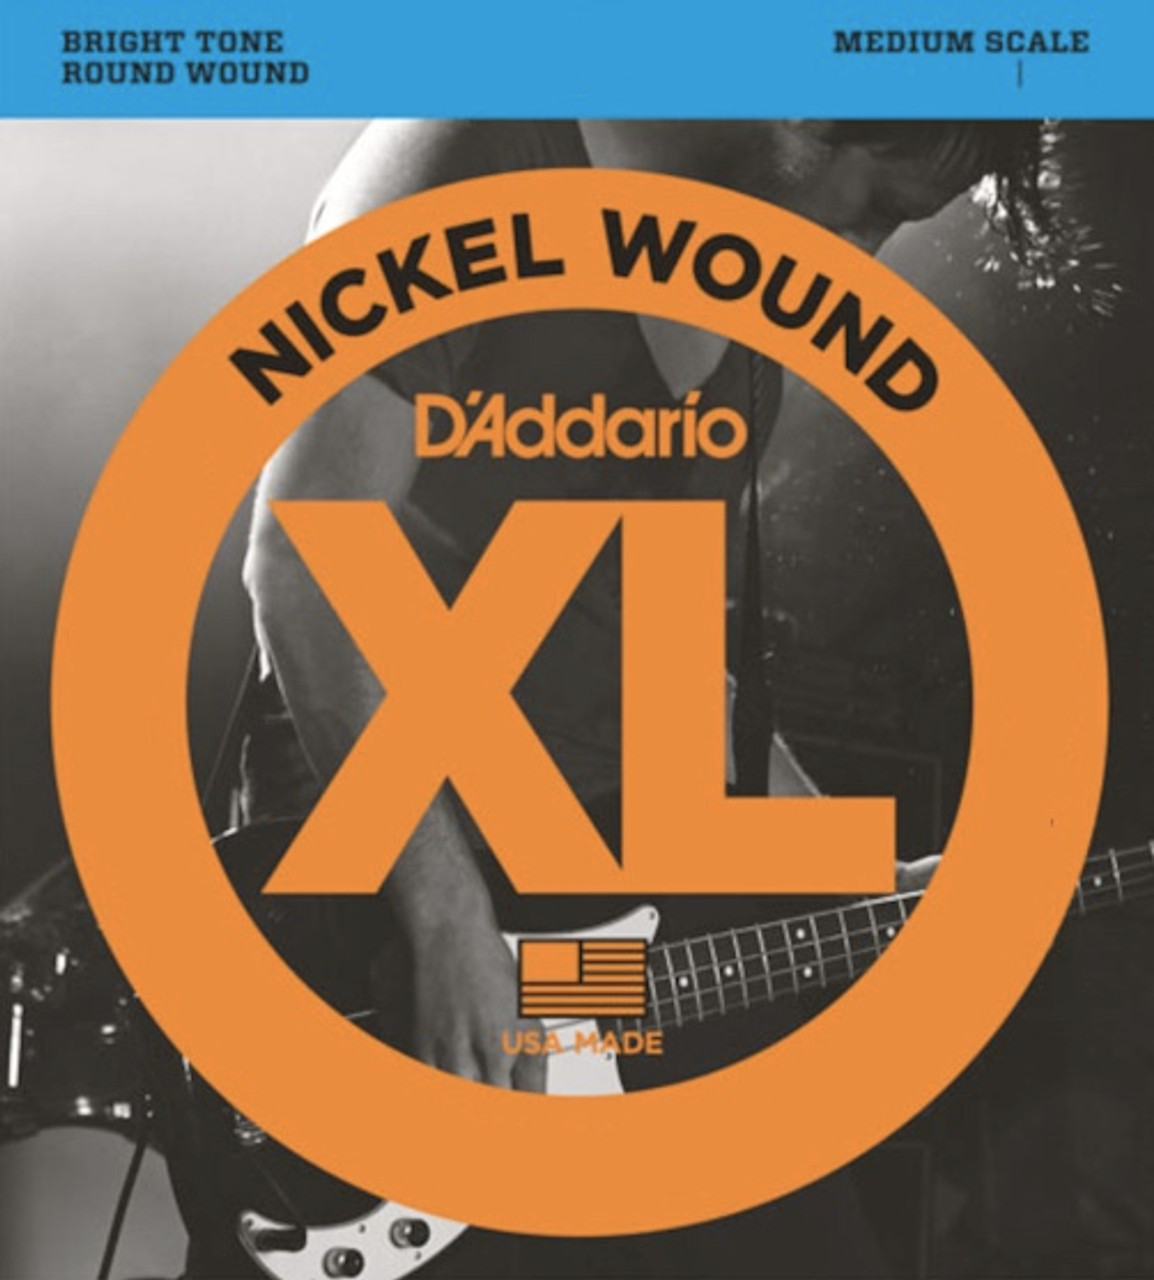 D'addario Medium Scale Bass Strings Ireland